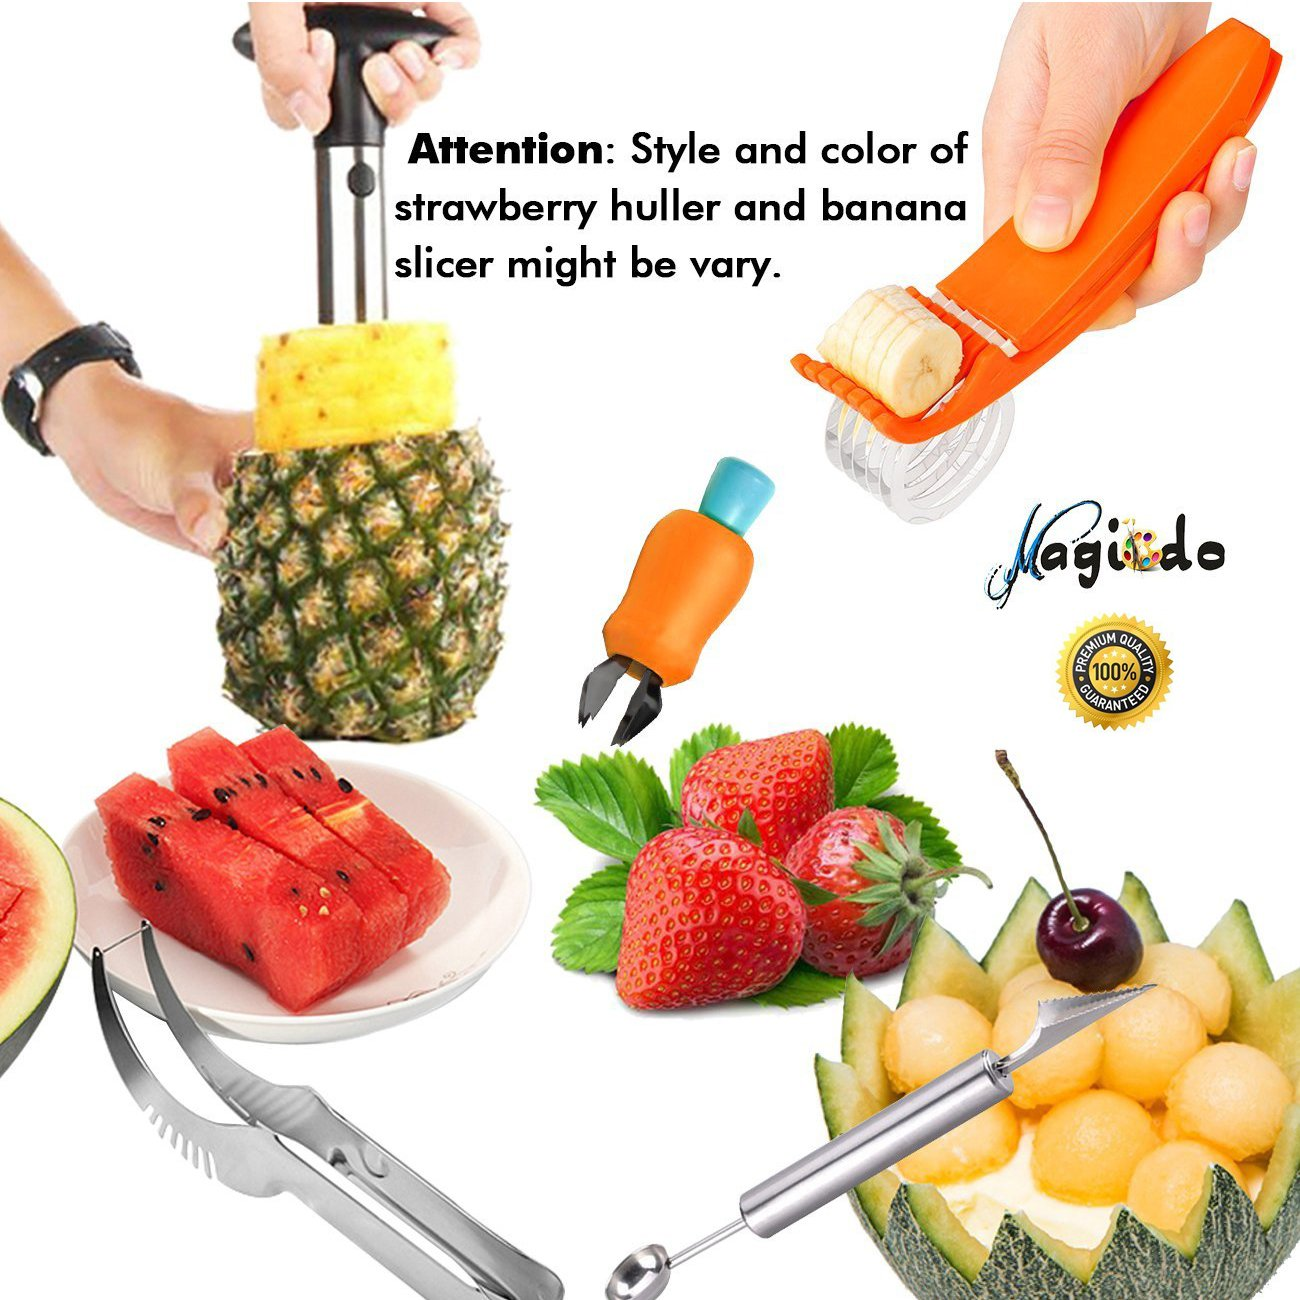 Magicdo 5 in 1 Fruit Slicer Set Iclude Pineapple Corer, Watermelon Slicer, Melon Baller/Scoop, Strawberry Huller and Banana Chopper-Kitchen Cutter Gadgets Kit Magic Decoration Inc